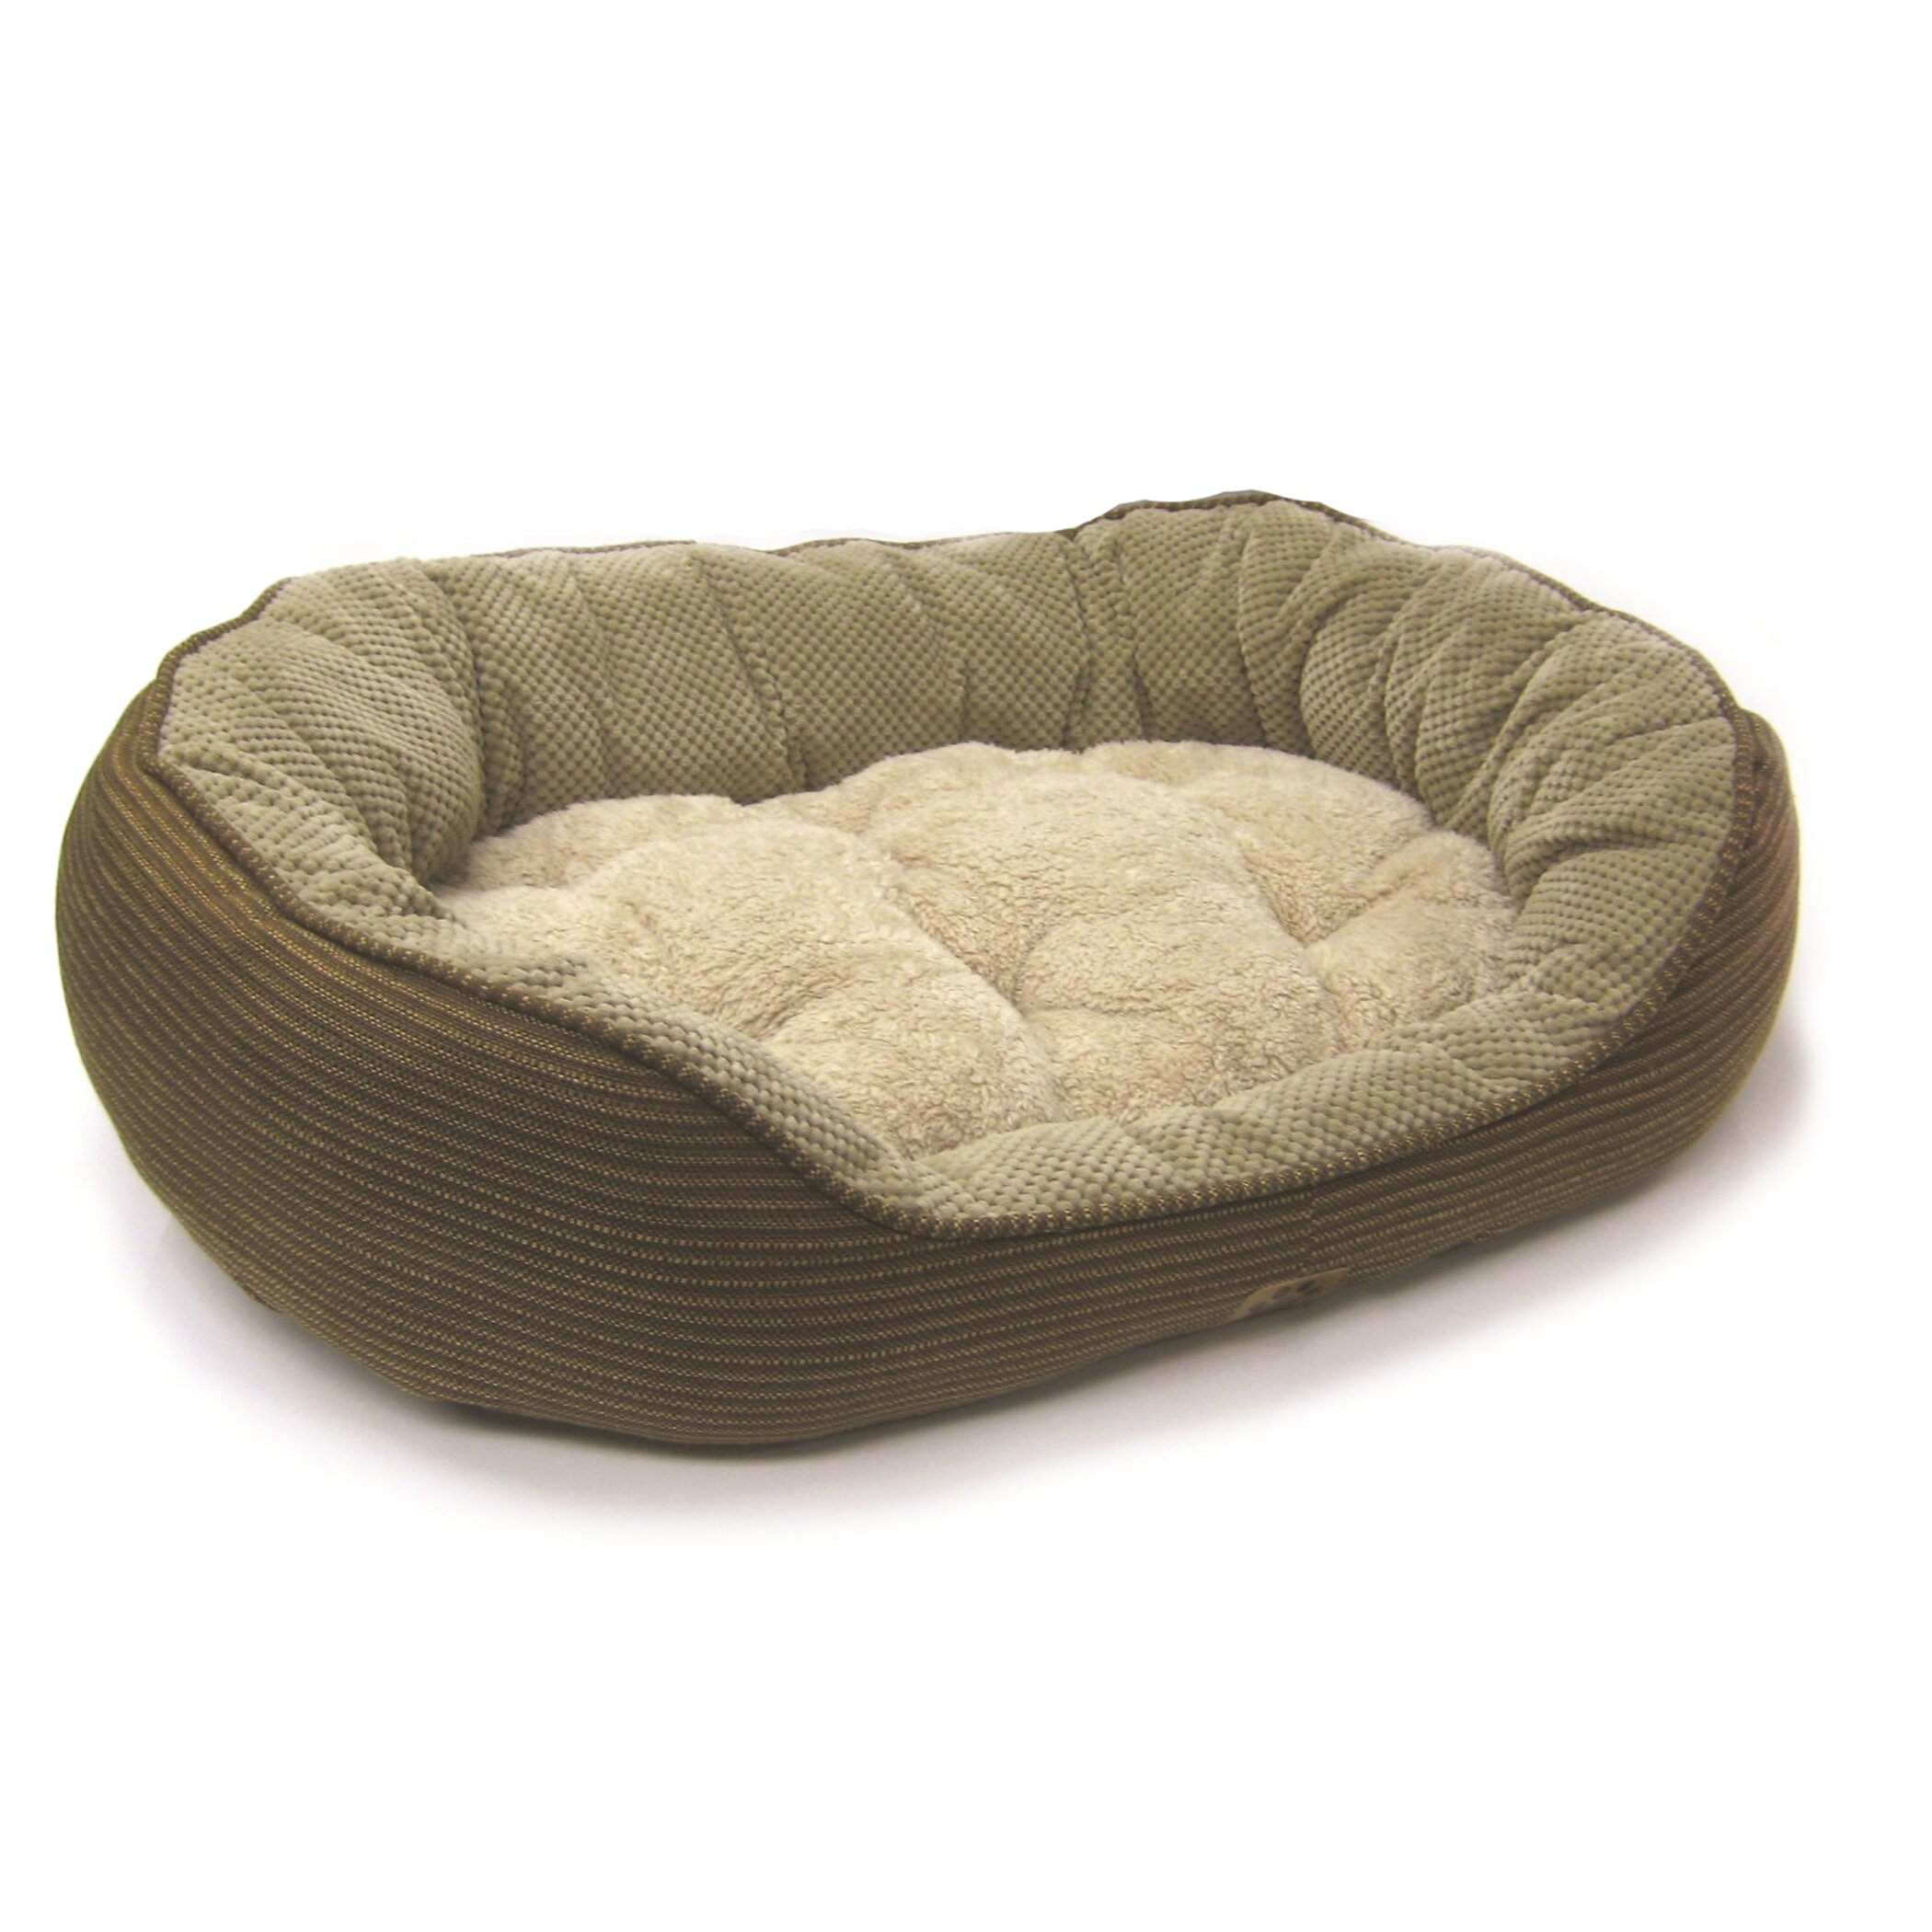 precision pet products pillow soft daydreamer dog bed - Bed Pillow Chair